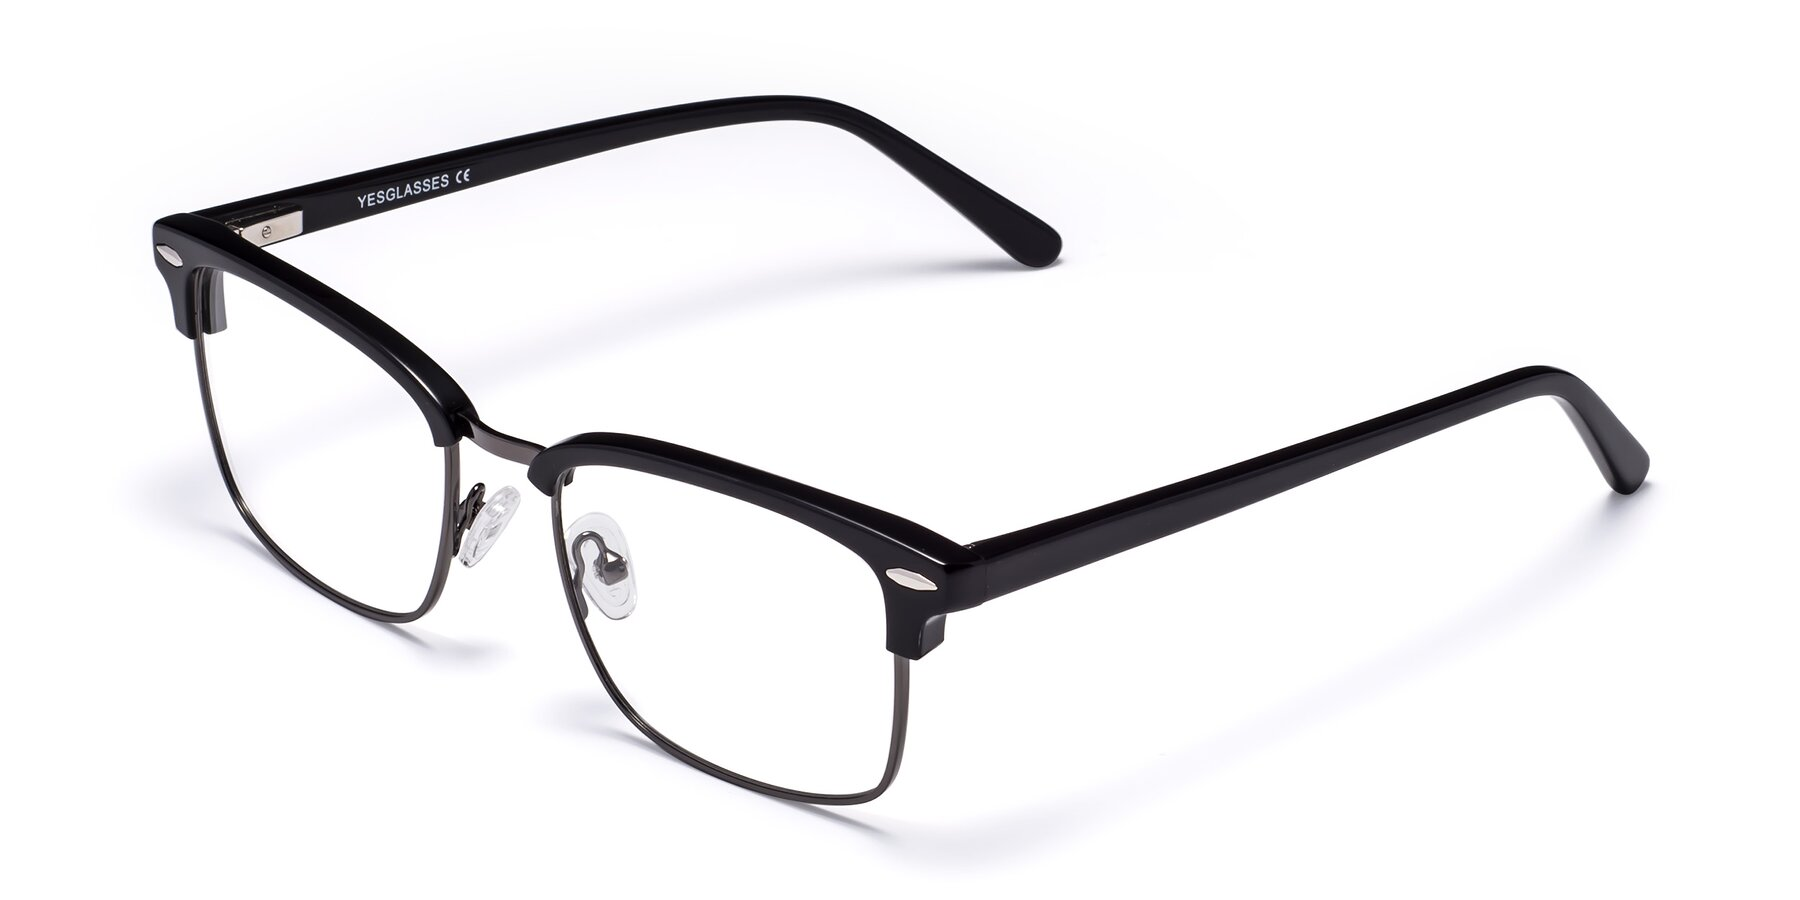 Angle of 17464 in Black-Gunmetal with Clear Blue Light Blocking Lenses